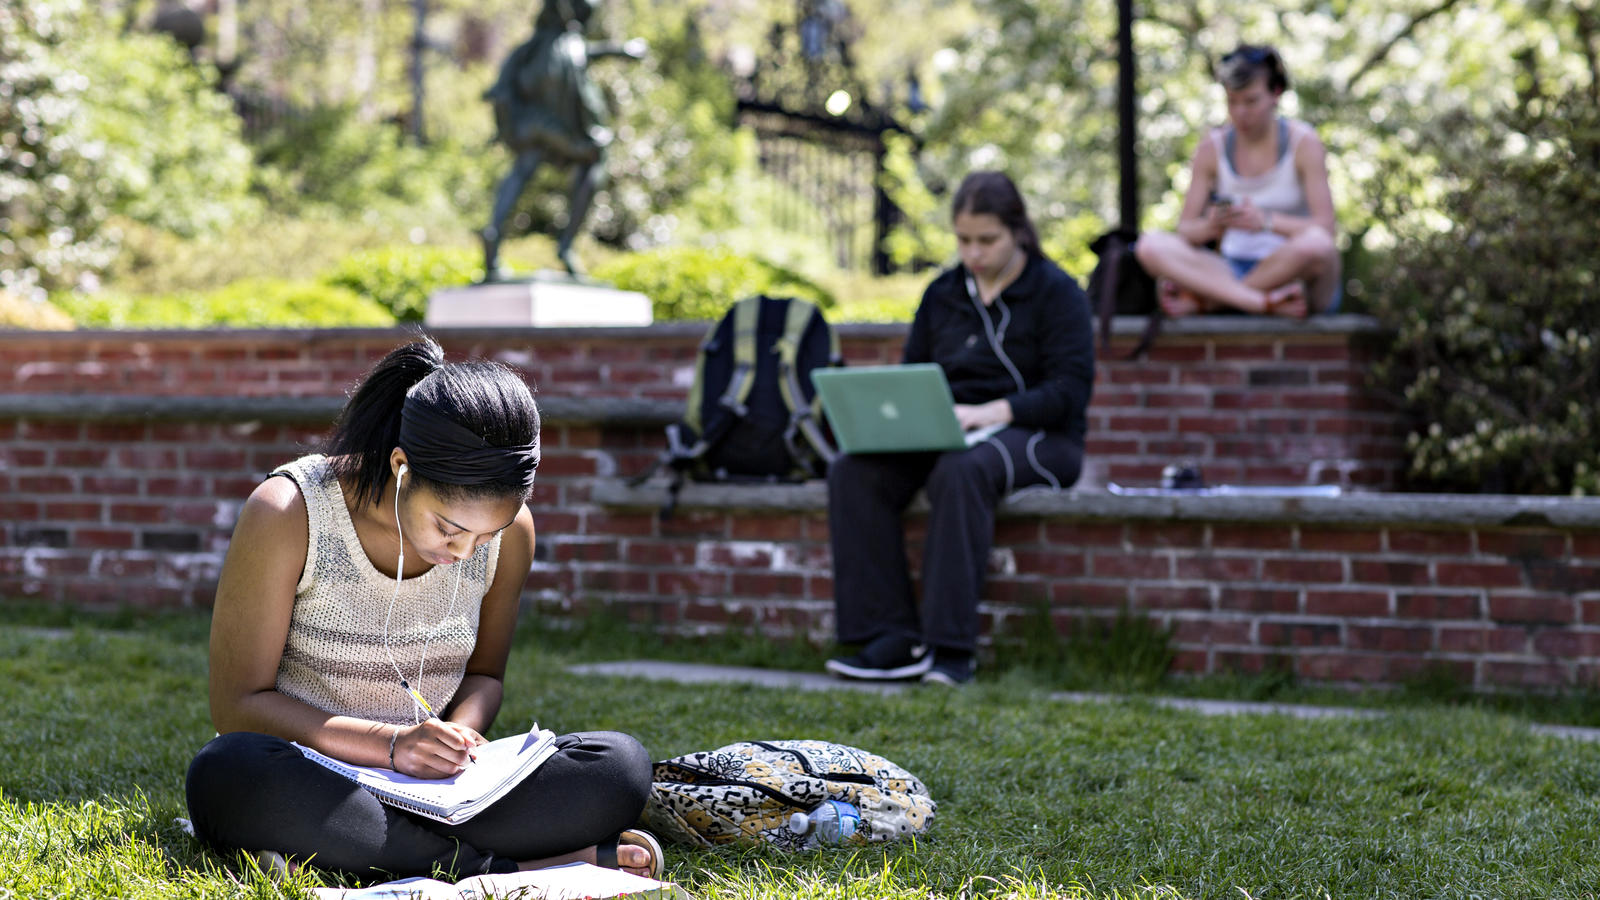 Students Studying on Lawn